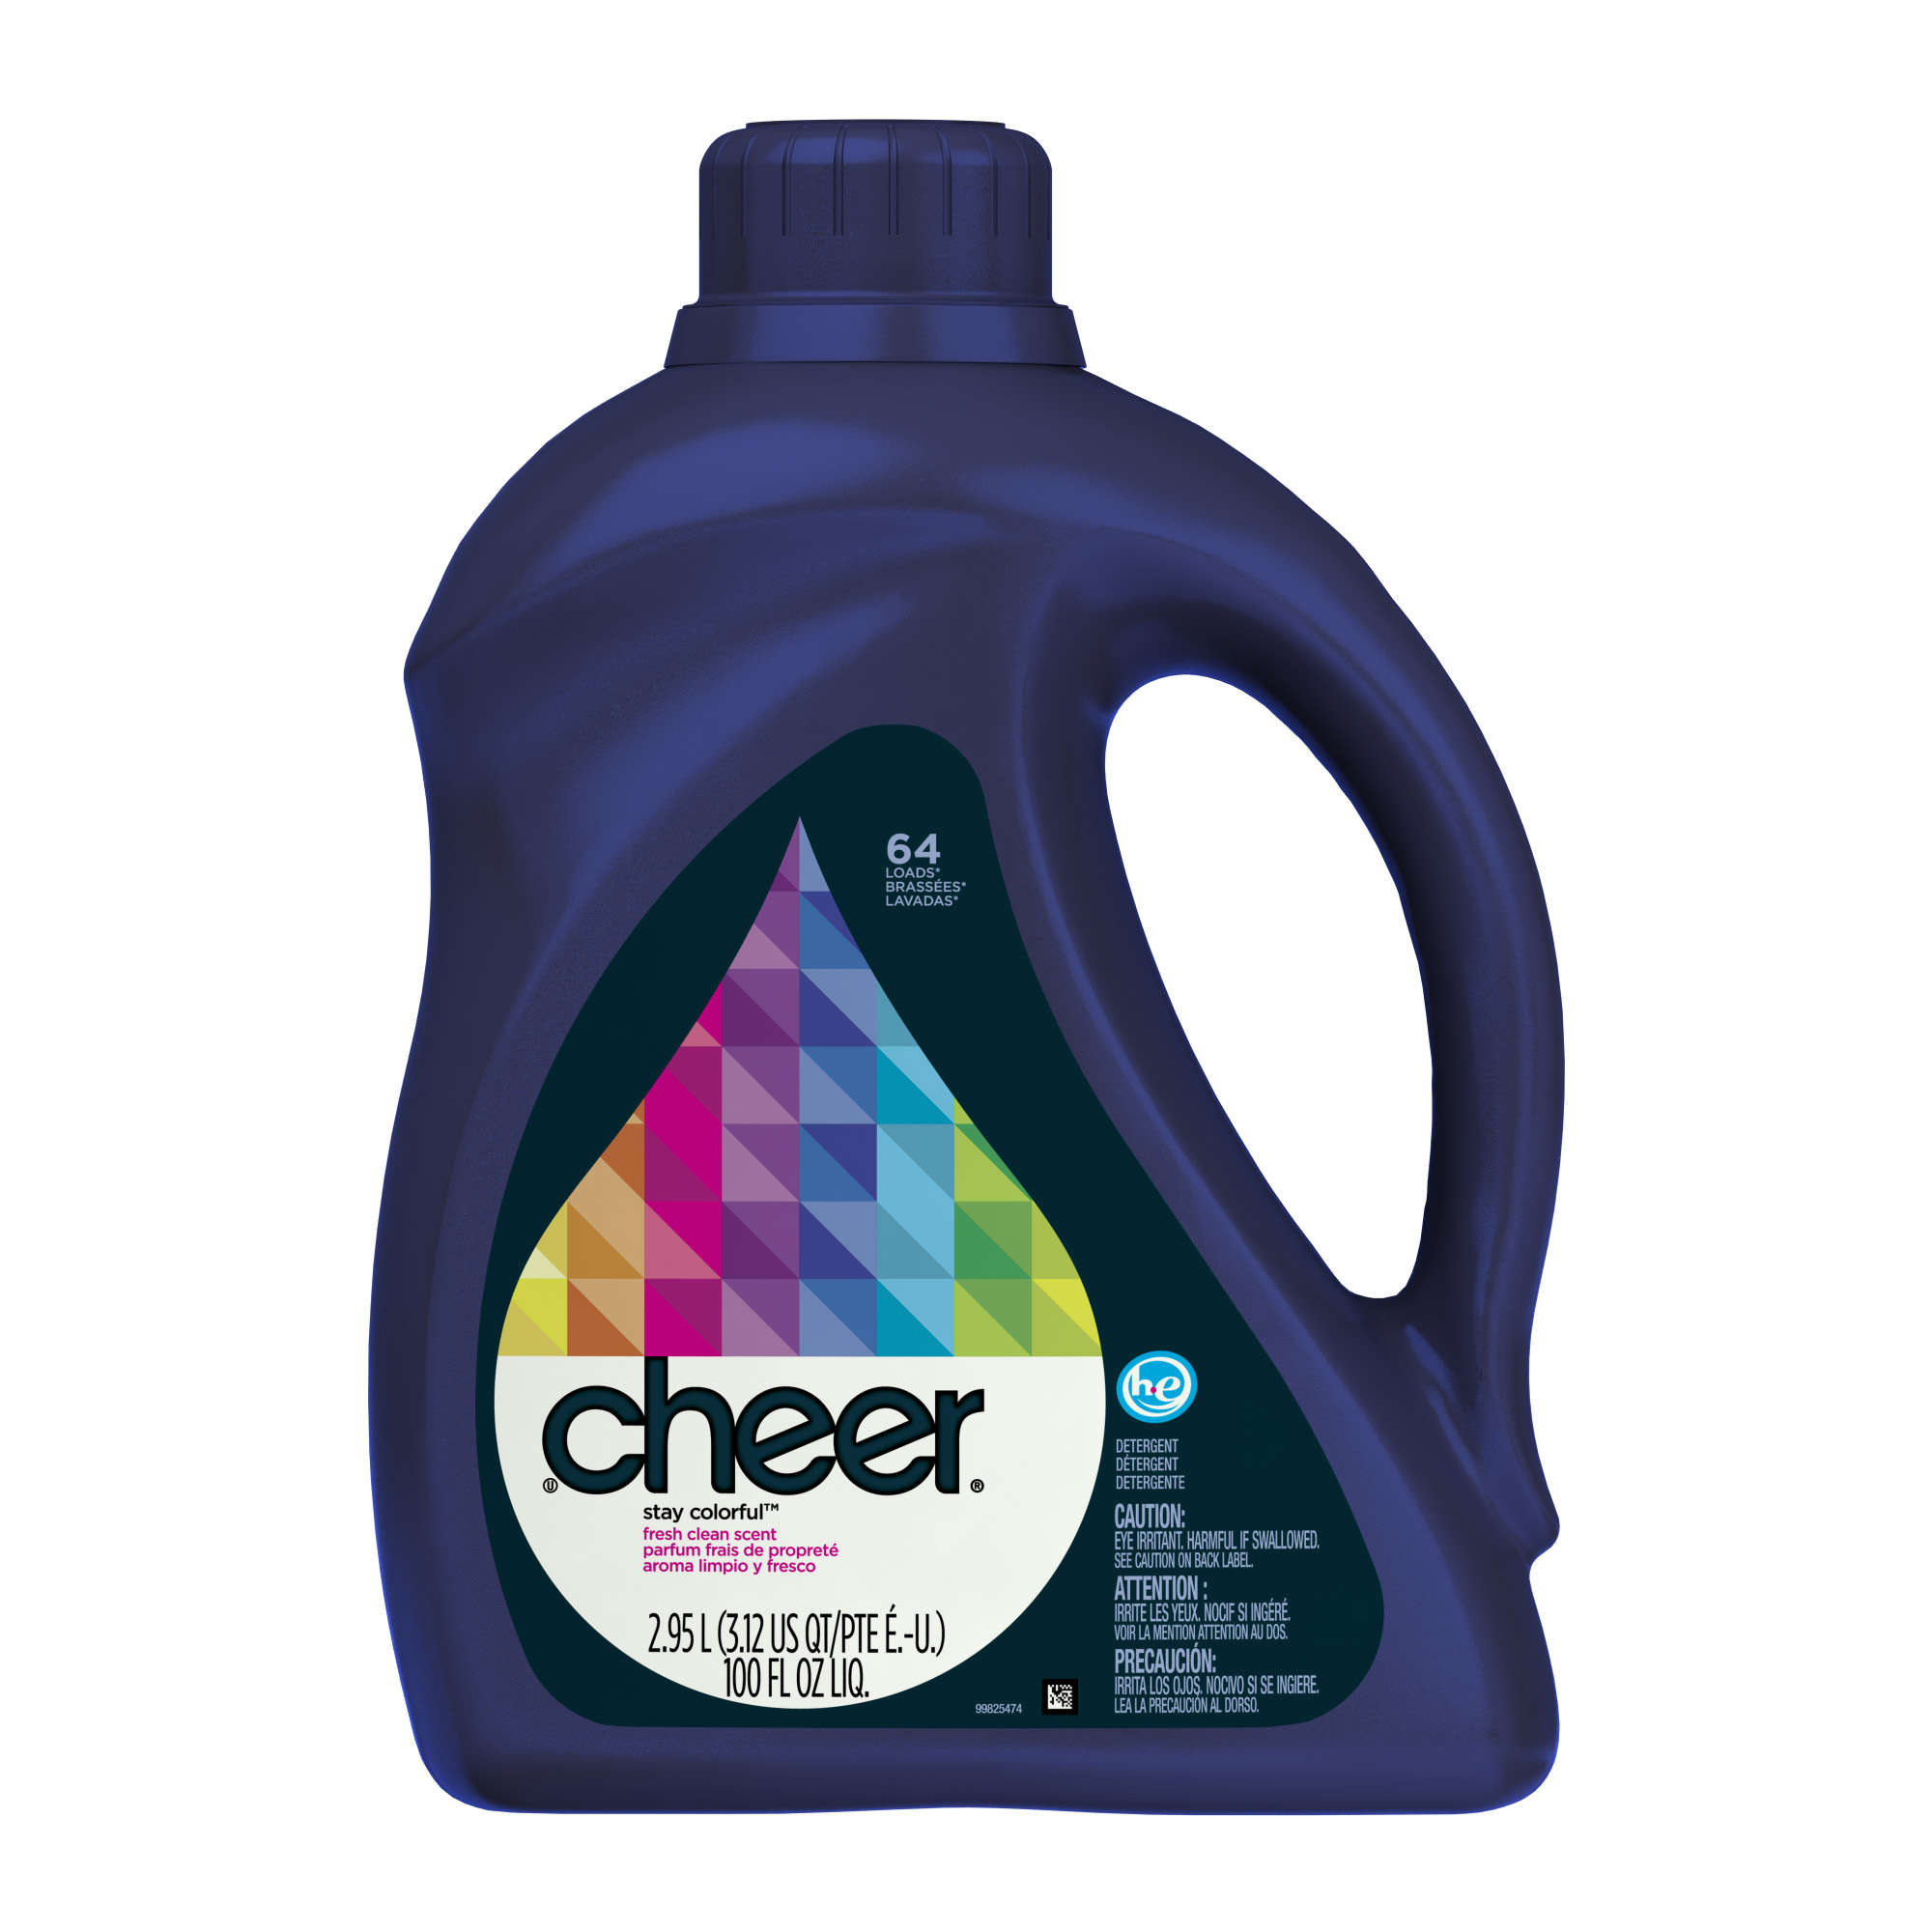 free cheer detergent coupons